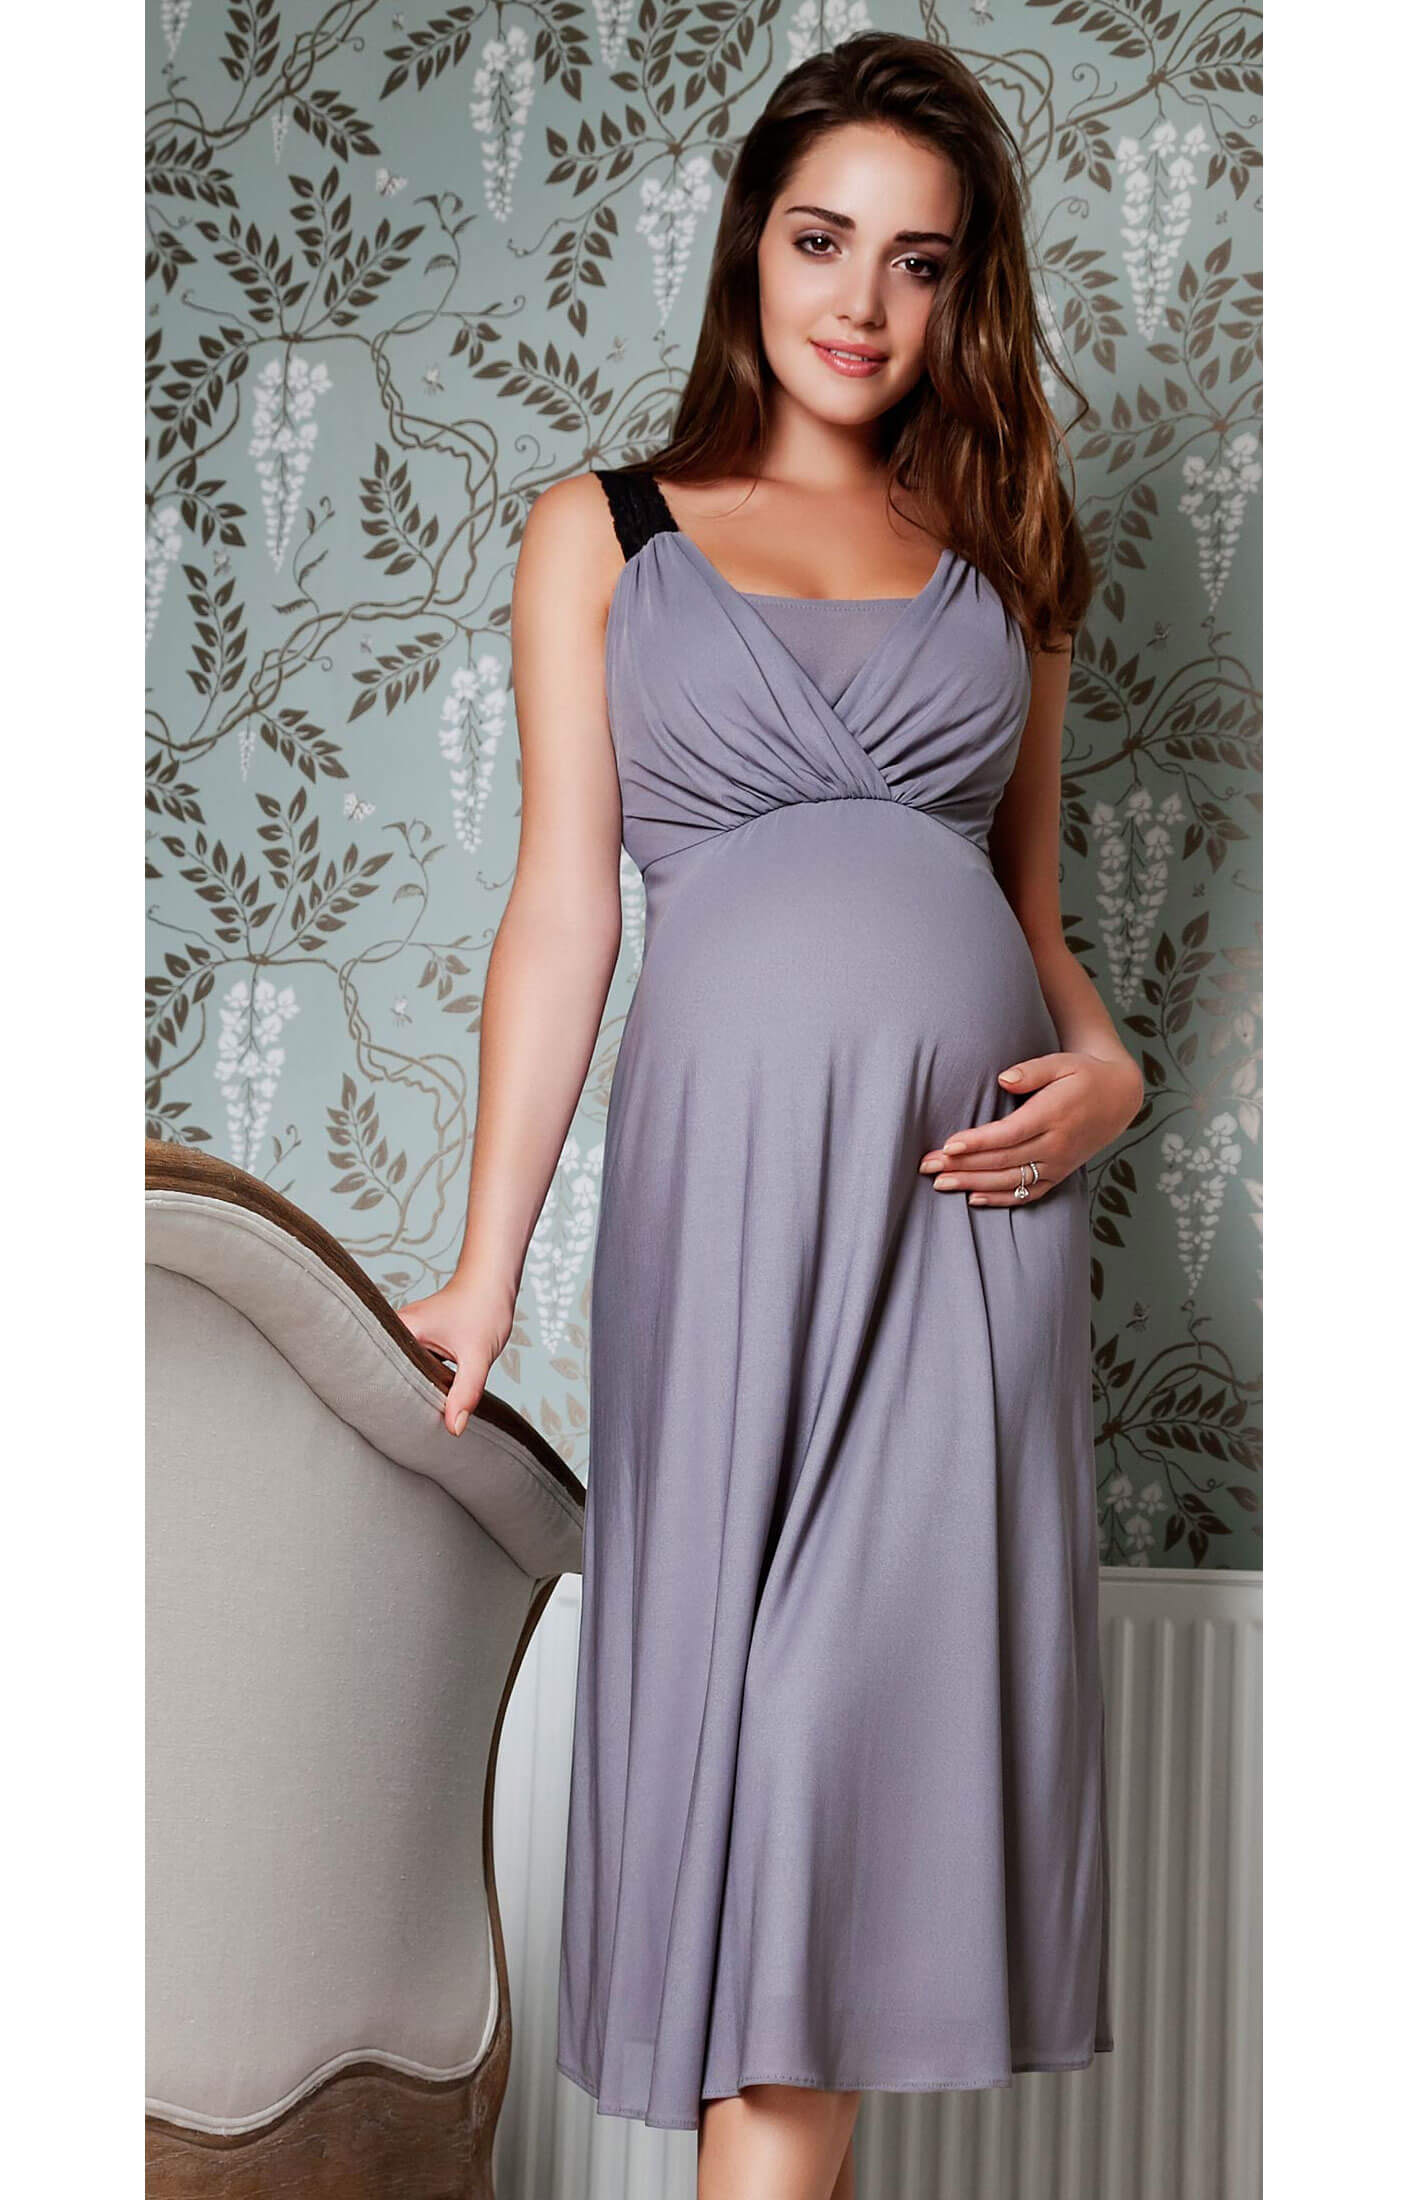 Luella maternity night gown maternity wedding dresses evening luella maternity night gown by tiffany rose ombrellifo Image collections